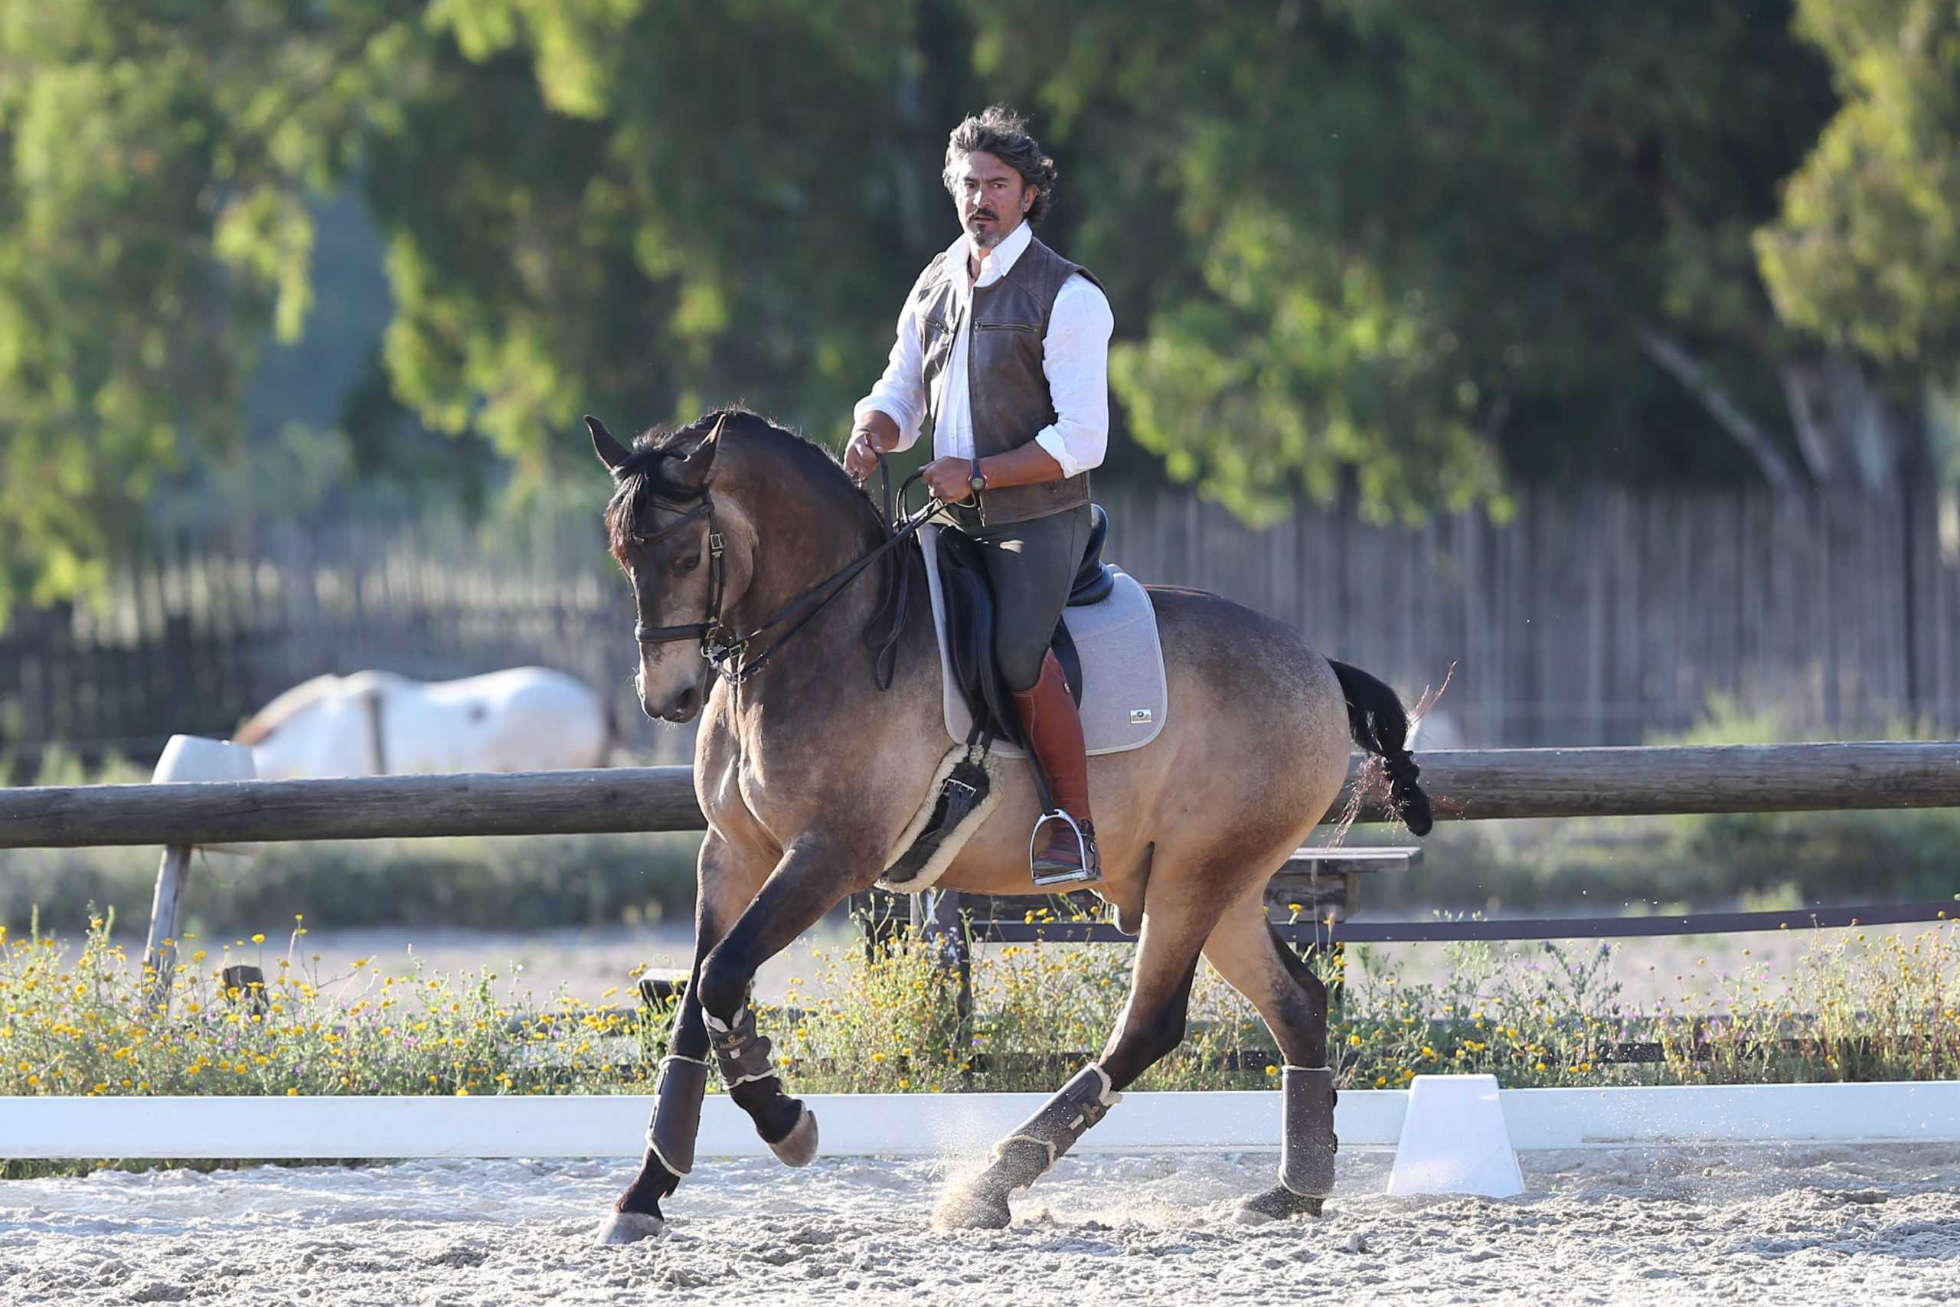 The magic between horse and rider